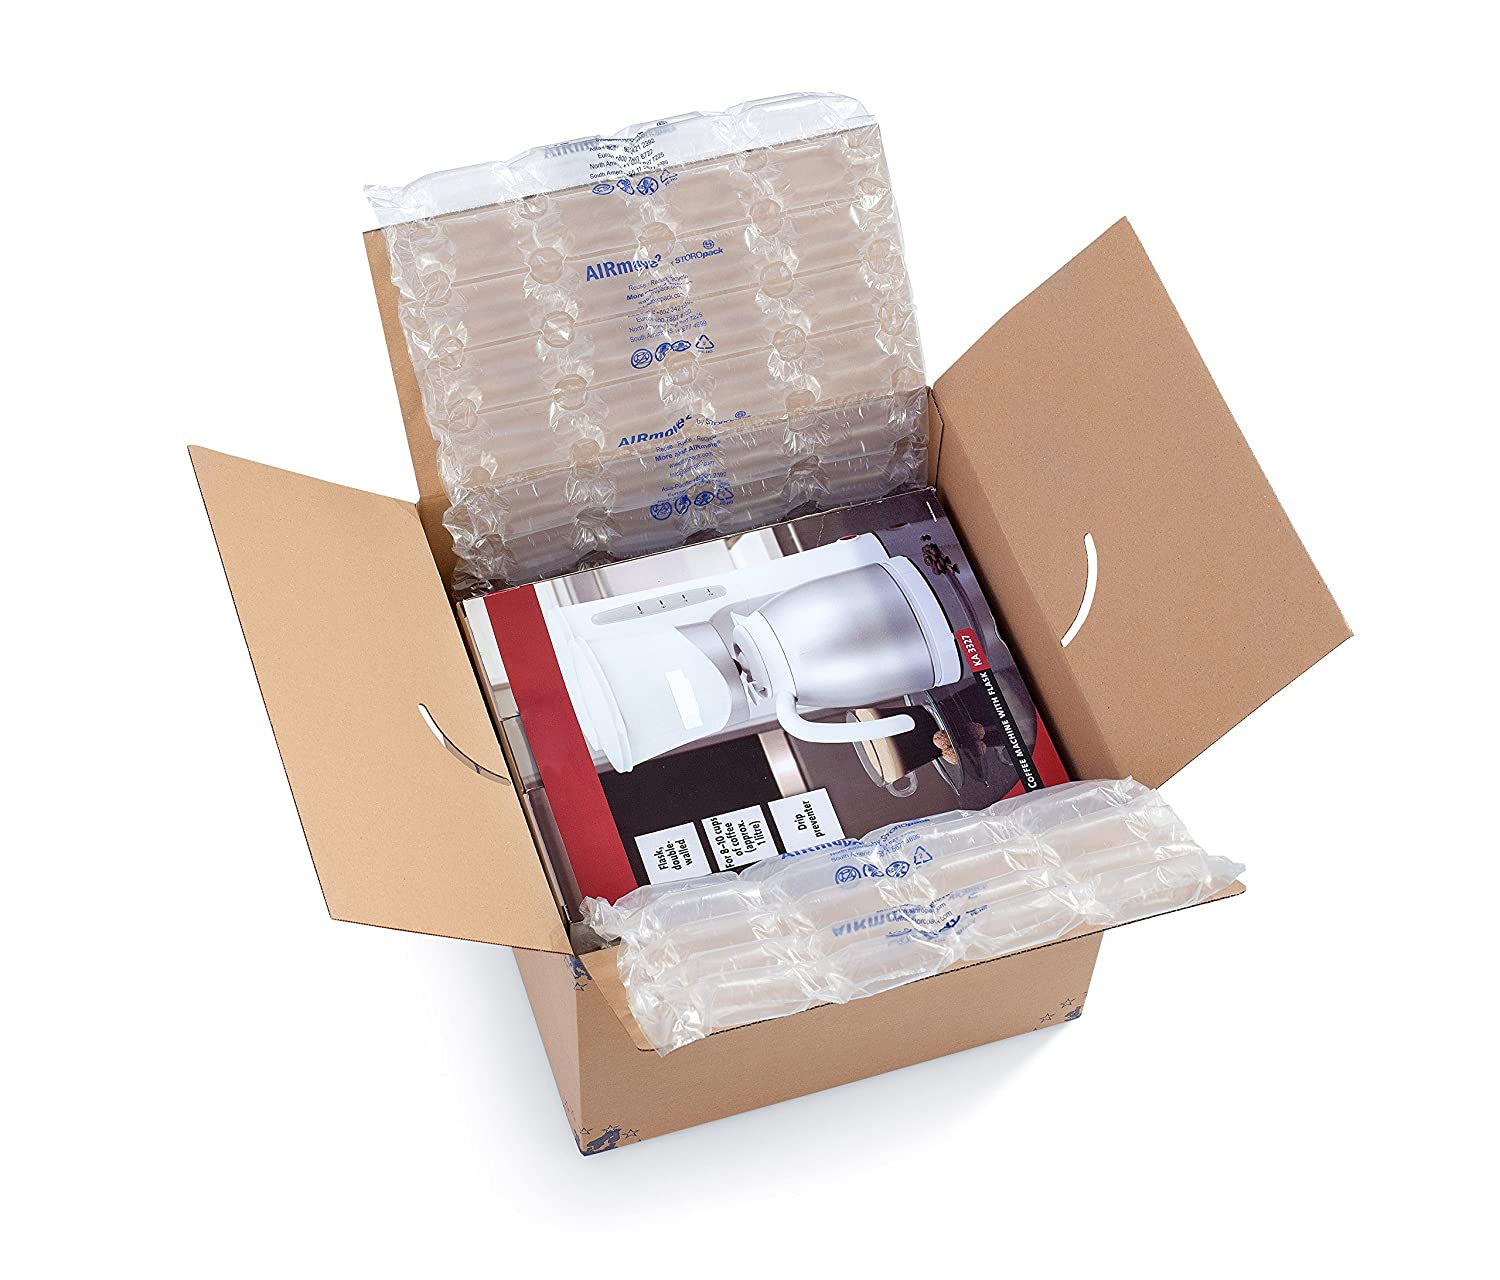 TSS Cushion M Carton Airmove Inflatable Packaging Air Film = 1 Carton Rolls ea. = 16 x 1 150' x 9.84 Perf Clear Pack of 2